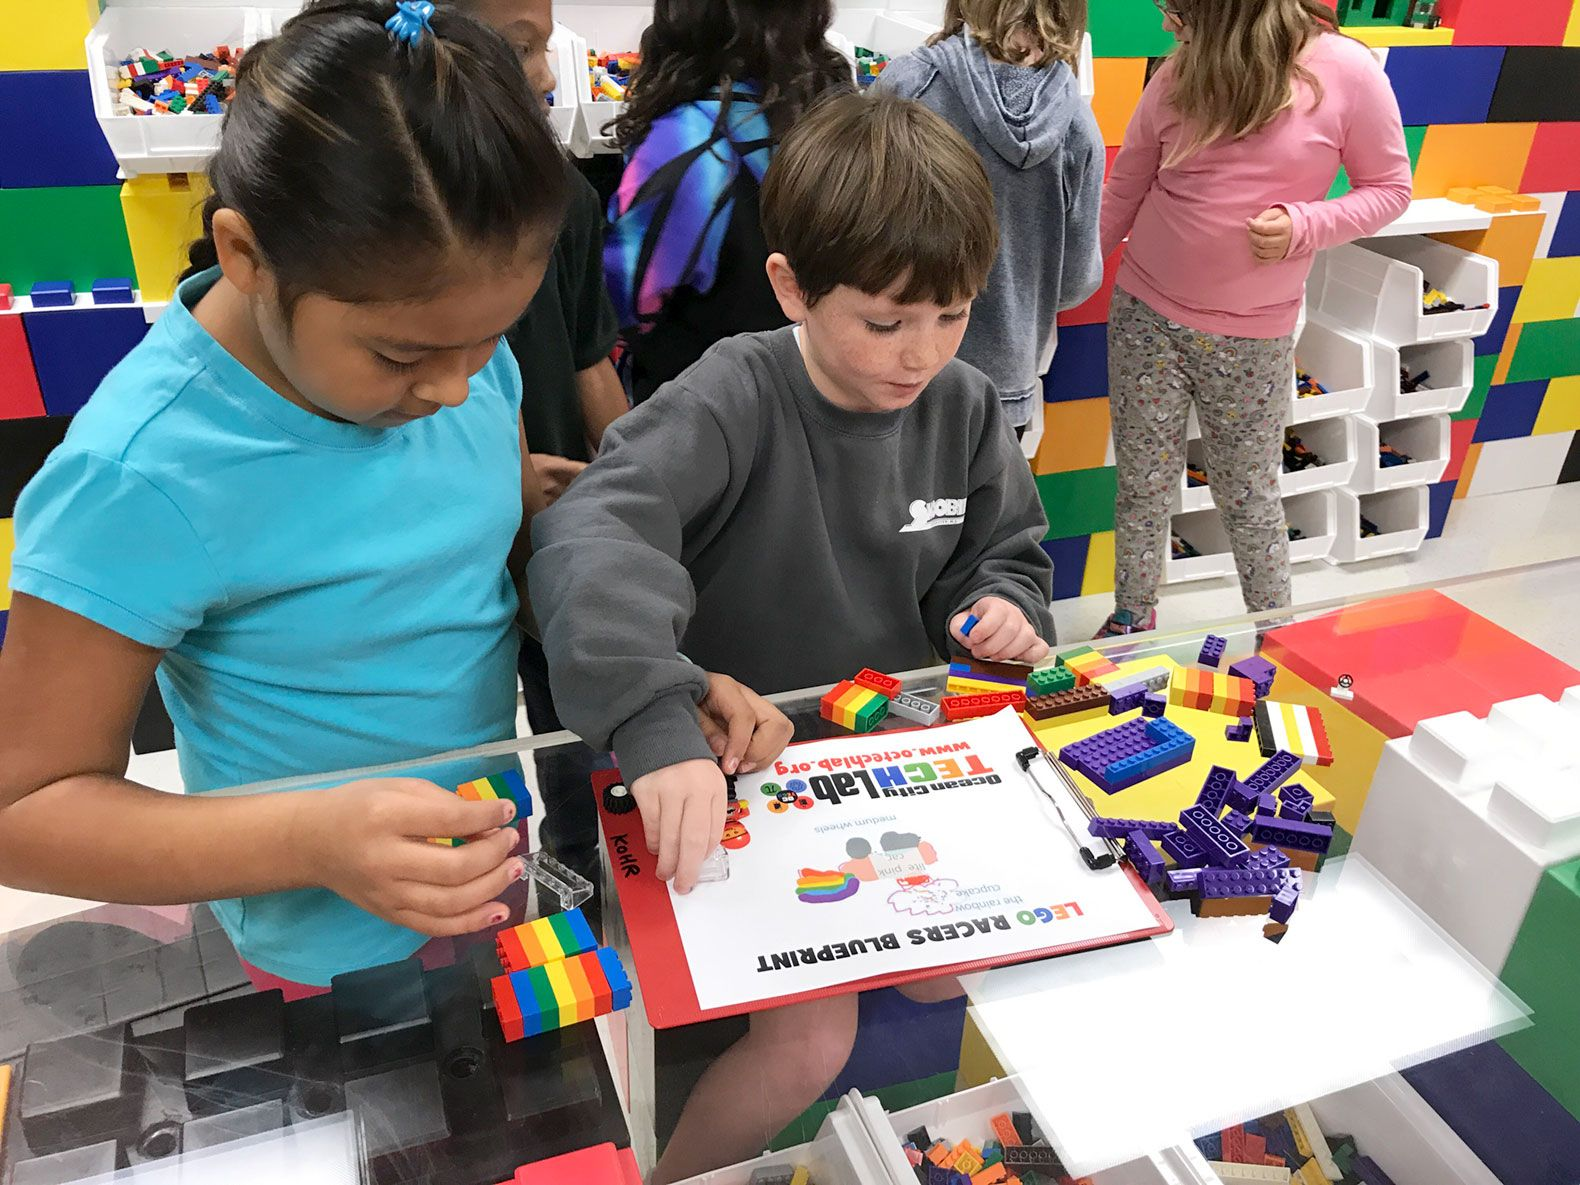 A Makerspace Built By Elementary Students